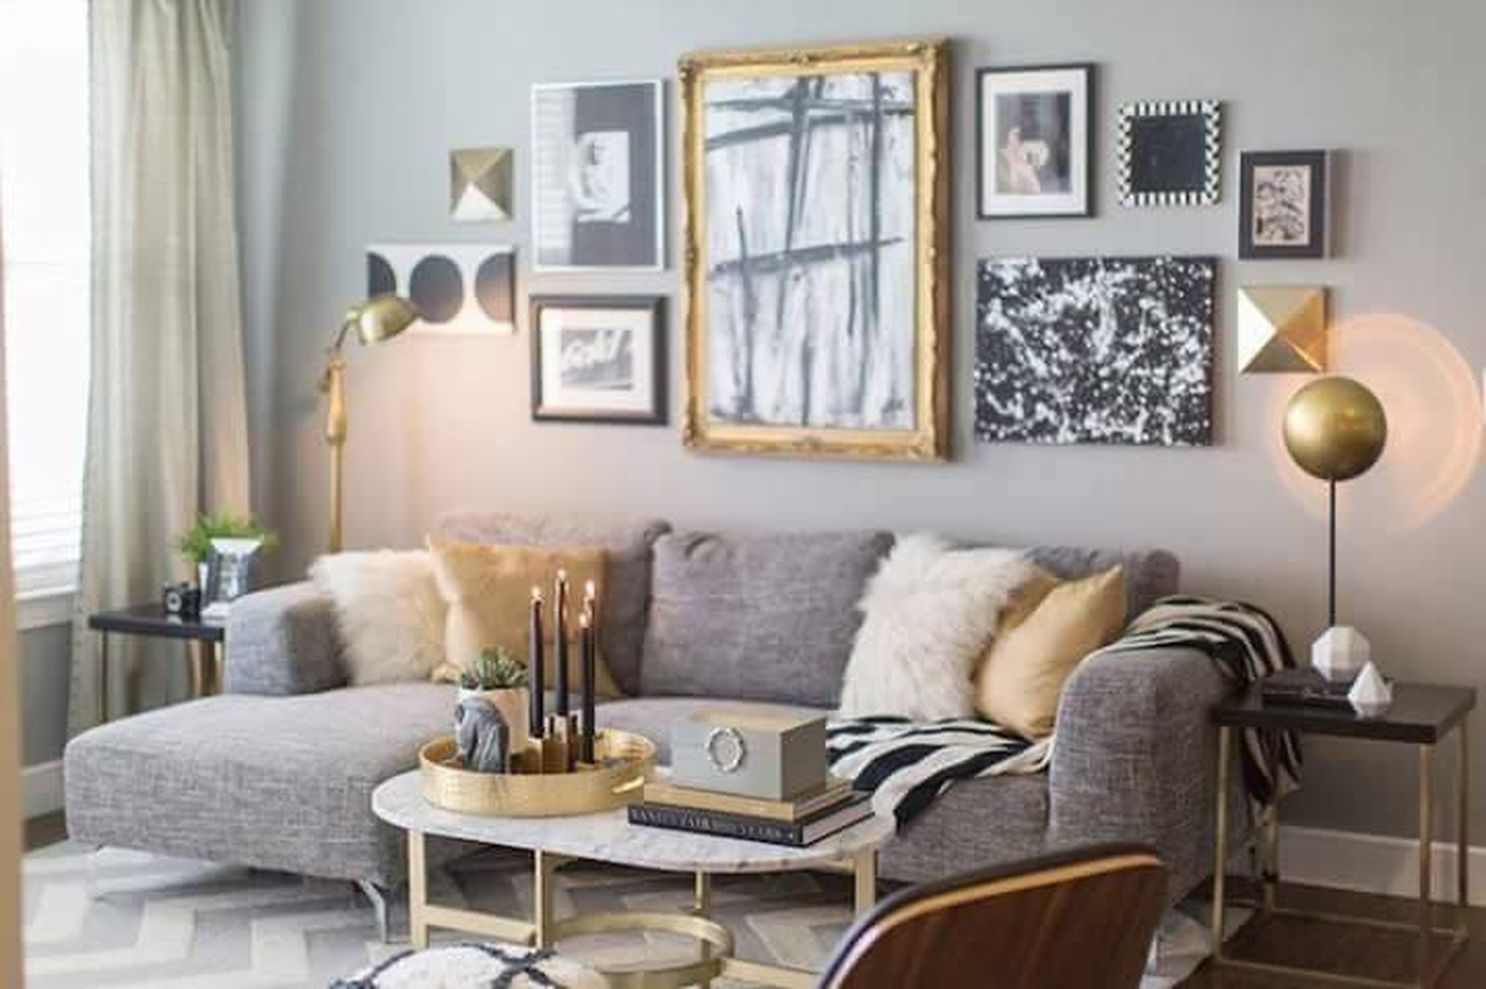 42 Incredible Teal And Silver Living Room Design Ideas Part 46